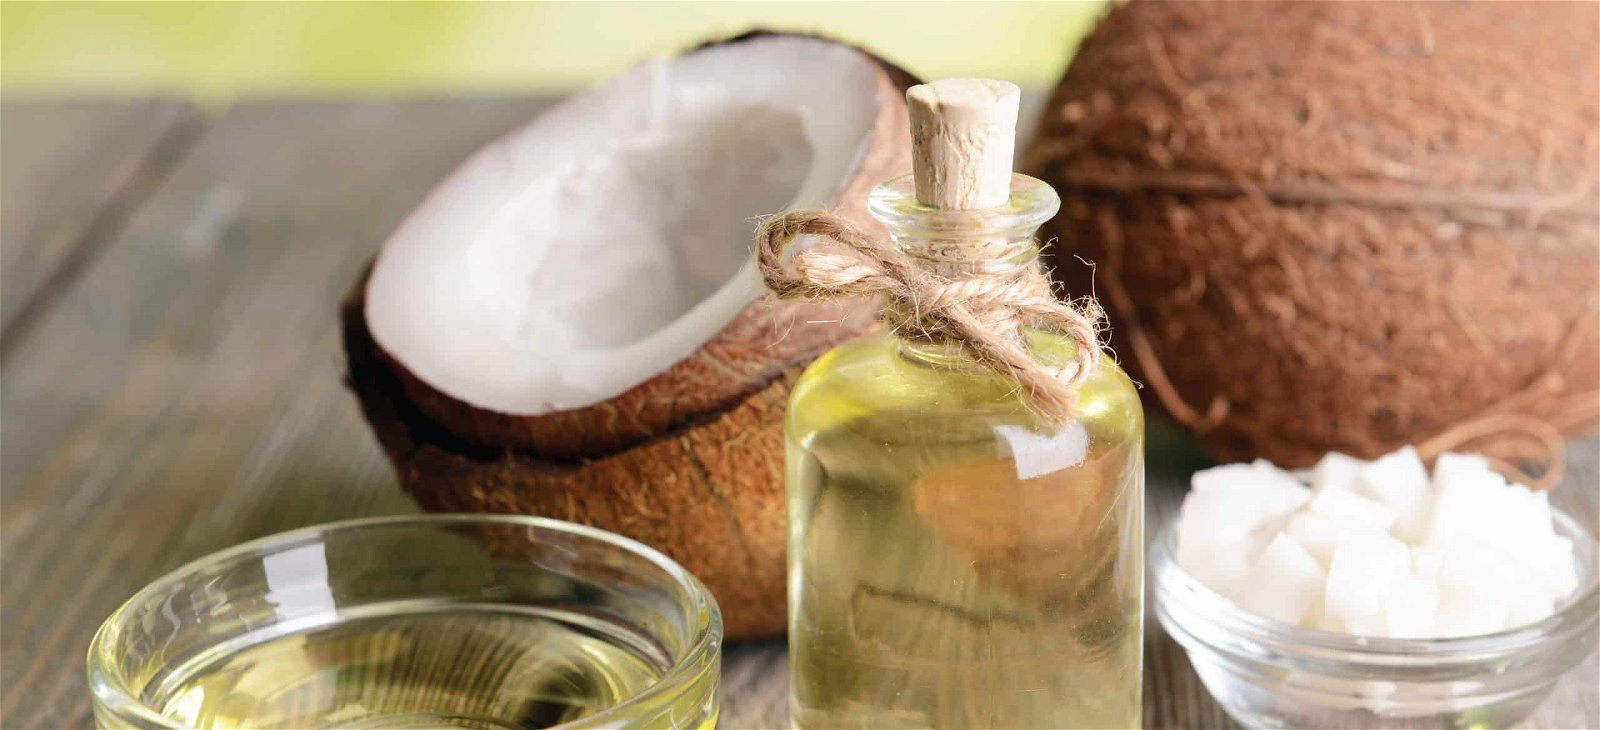 Coconut-Oil-for-Skin-23-Uses-and-DIY-Recipes